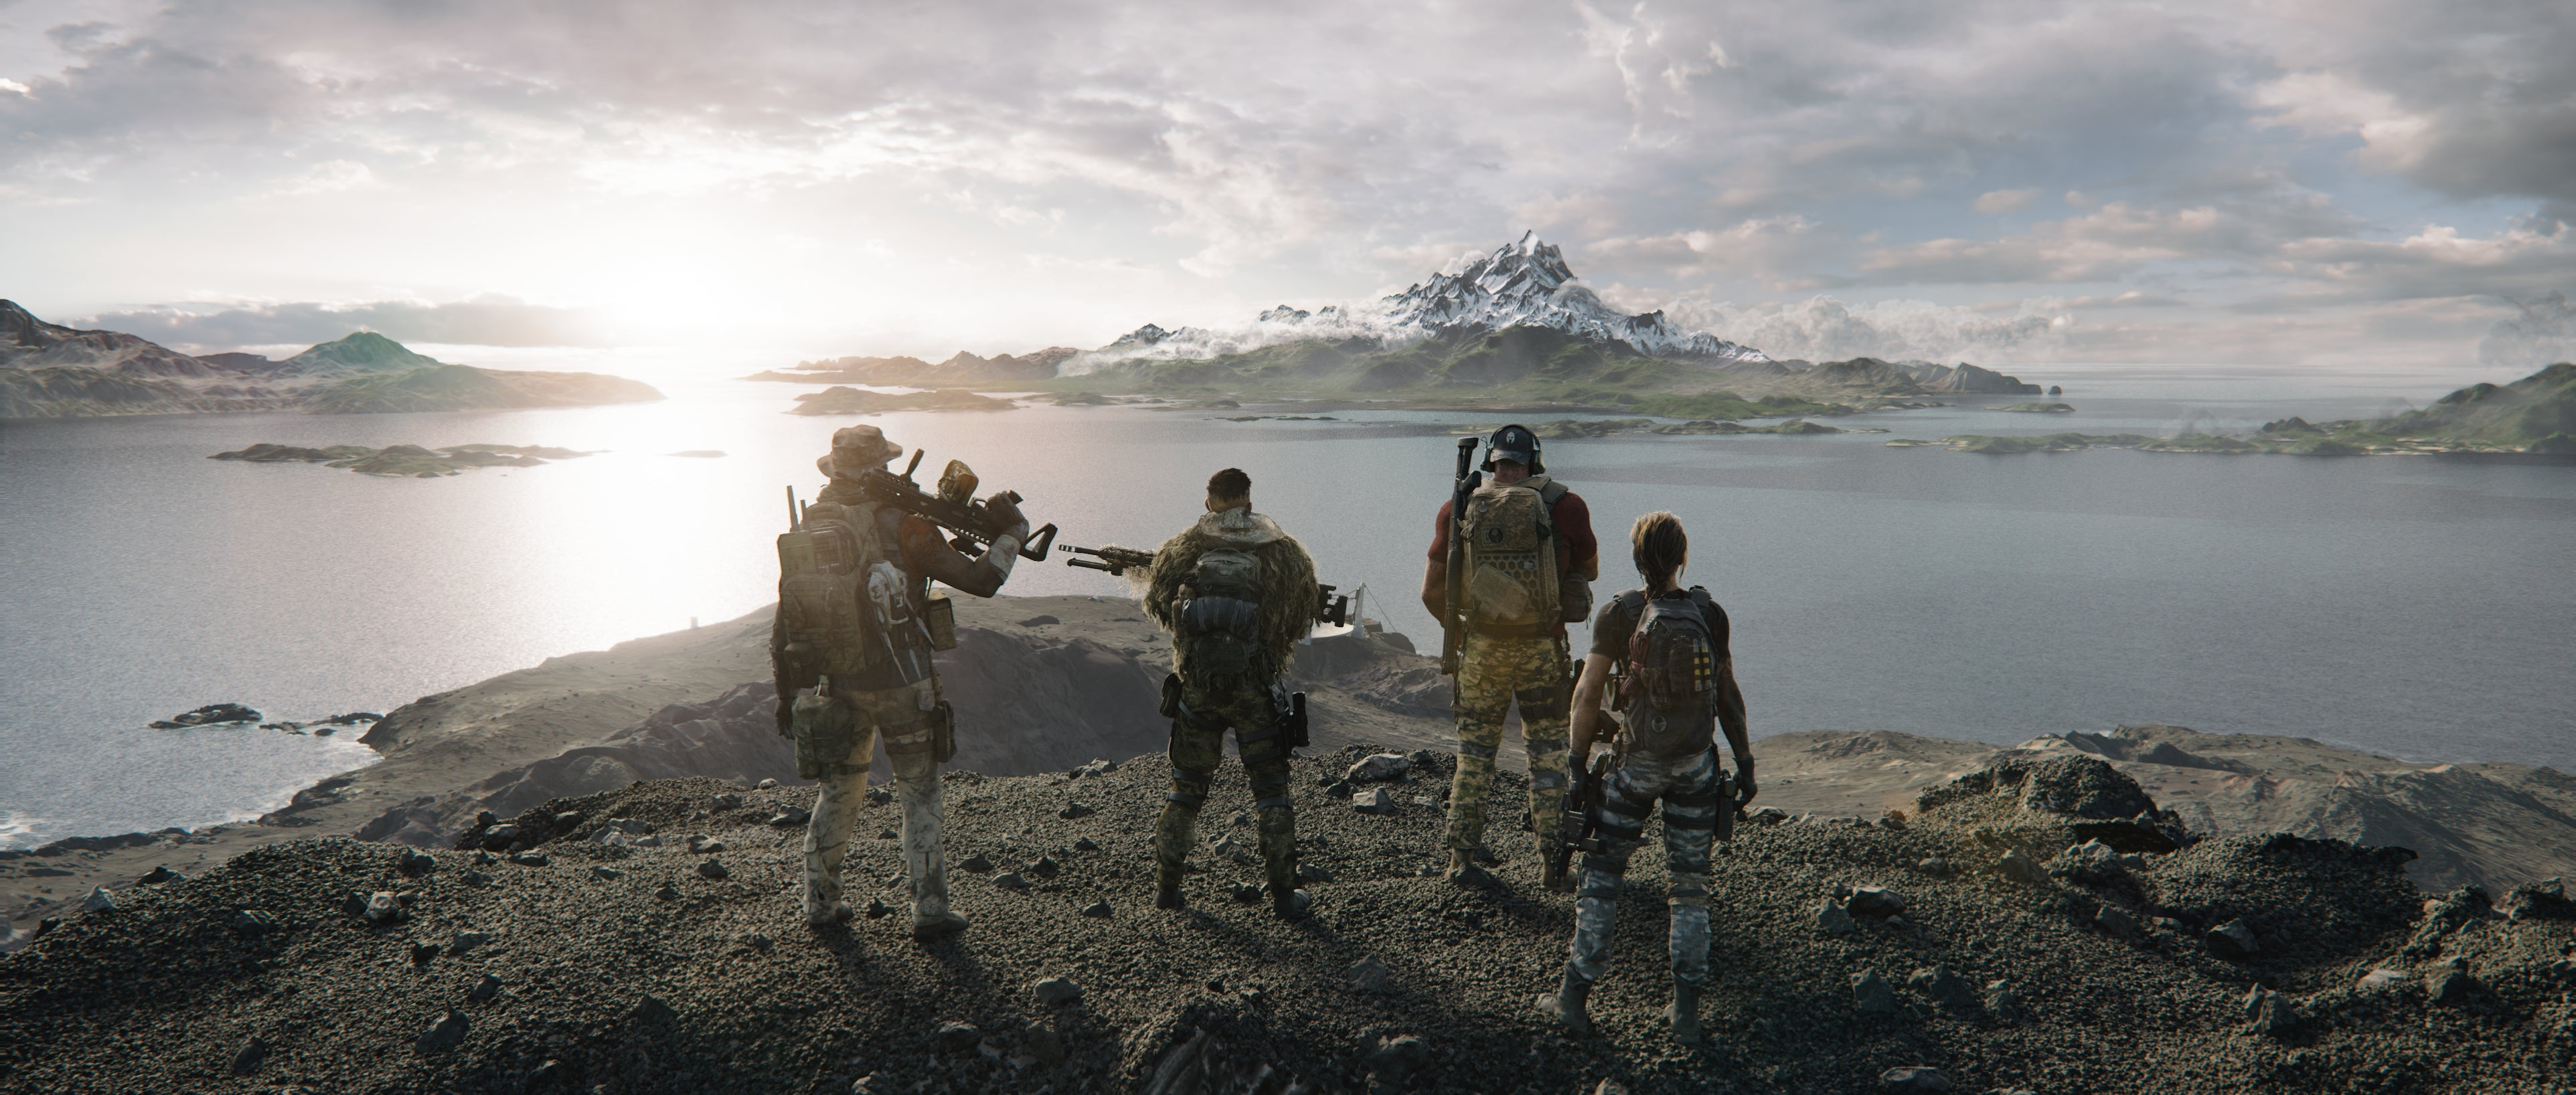 Ghost Recon Bungled Bolivia, So At Least They're Going Somewhere Fictional This Time